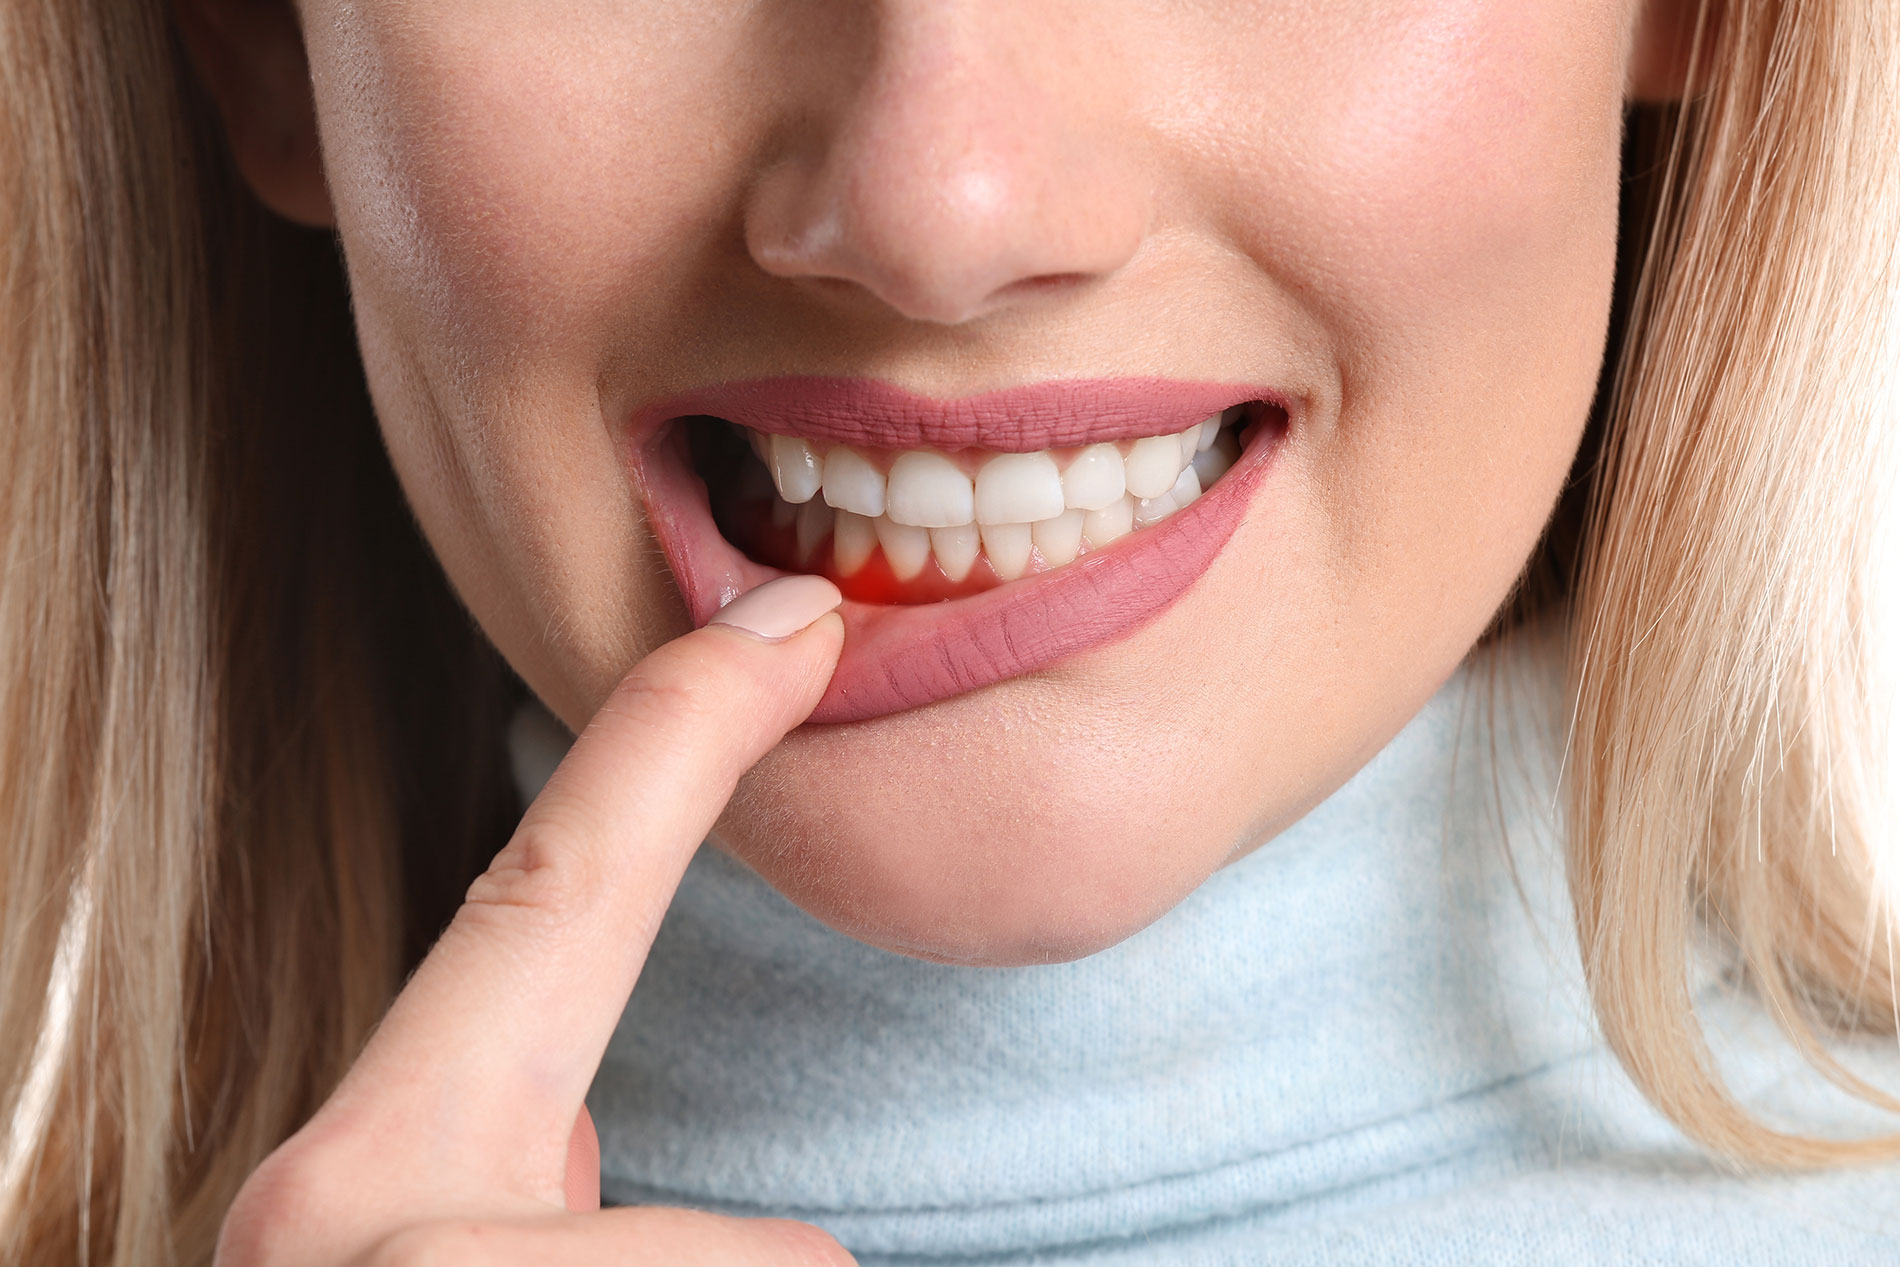 Woman with gum inflammation, closeup